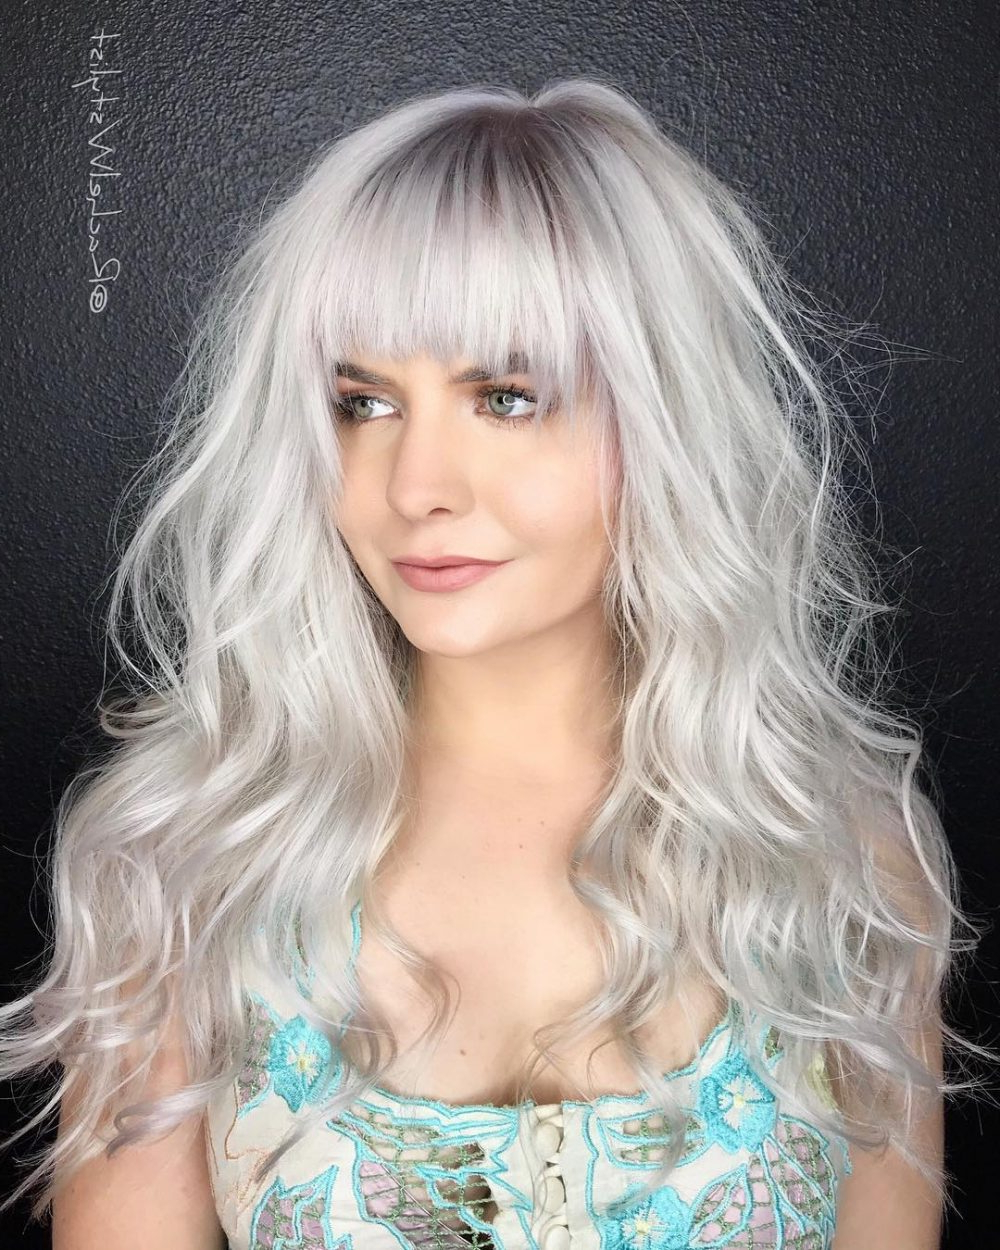 31 Most Flattering Hairstyles For Round Faces Of 2019 For Most Popular Medium Haircuts With Bangs For Round Faces (View 15 of 20)